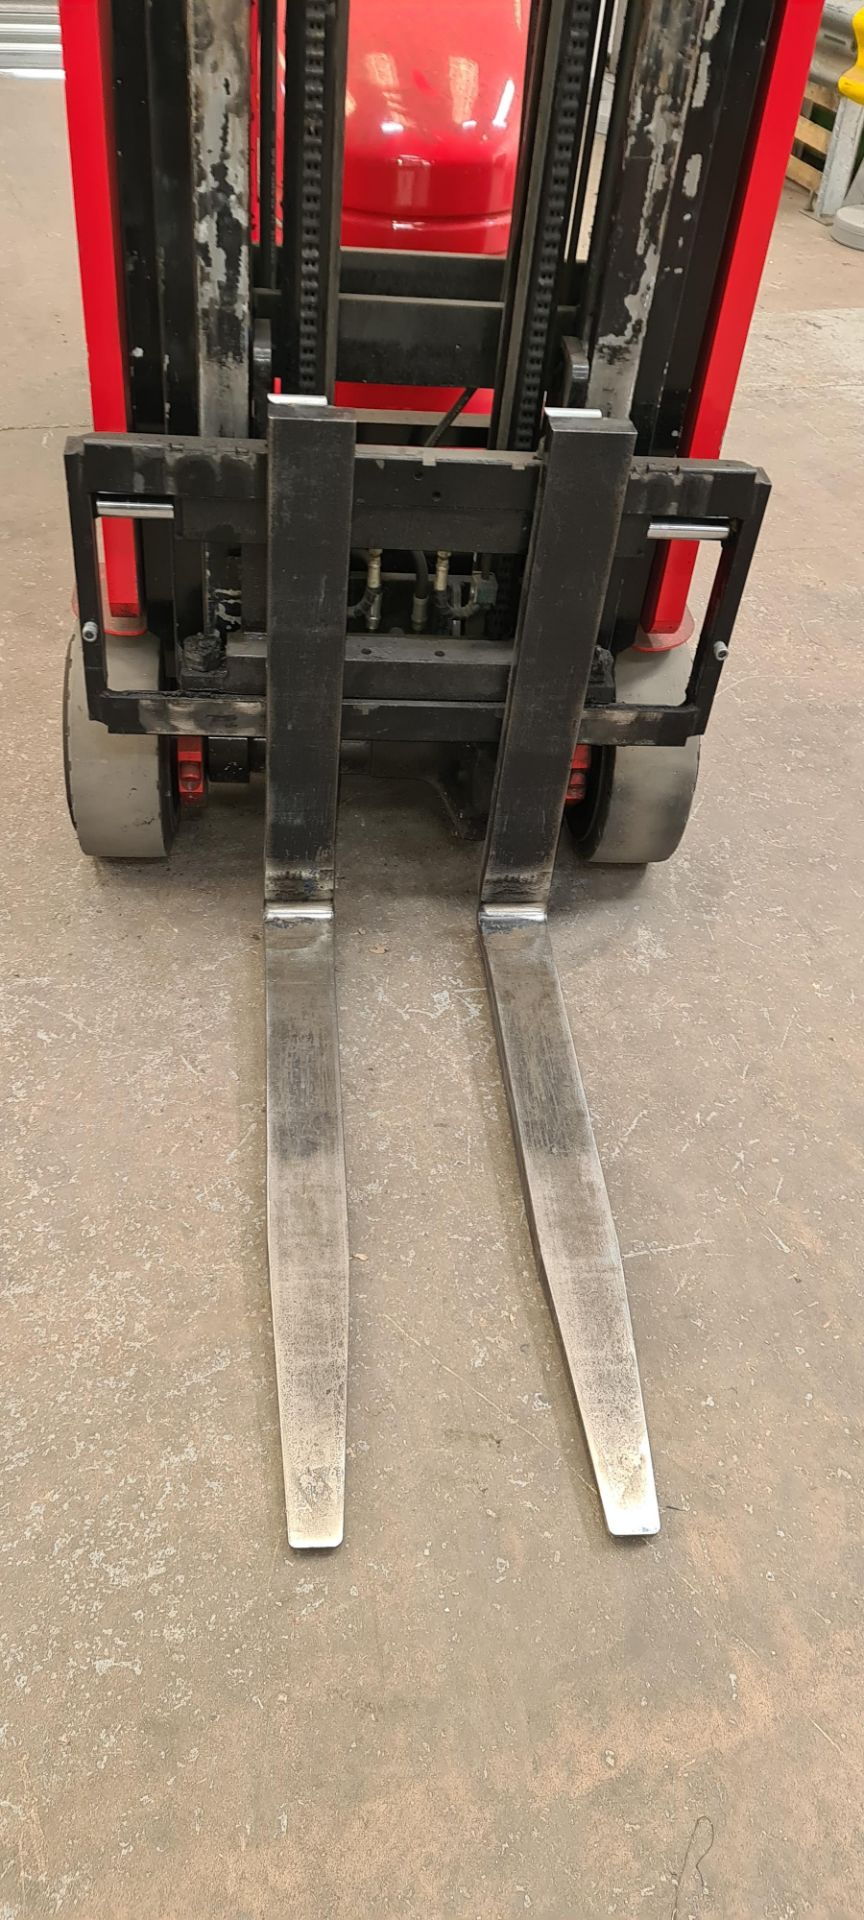 2014 Flexi Euro AC 'bendy' electric Fork Lift Truck - Image 7 of 29